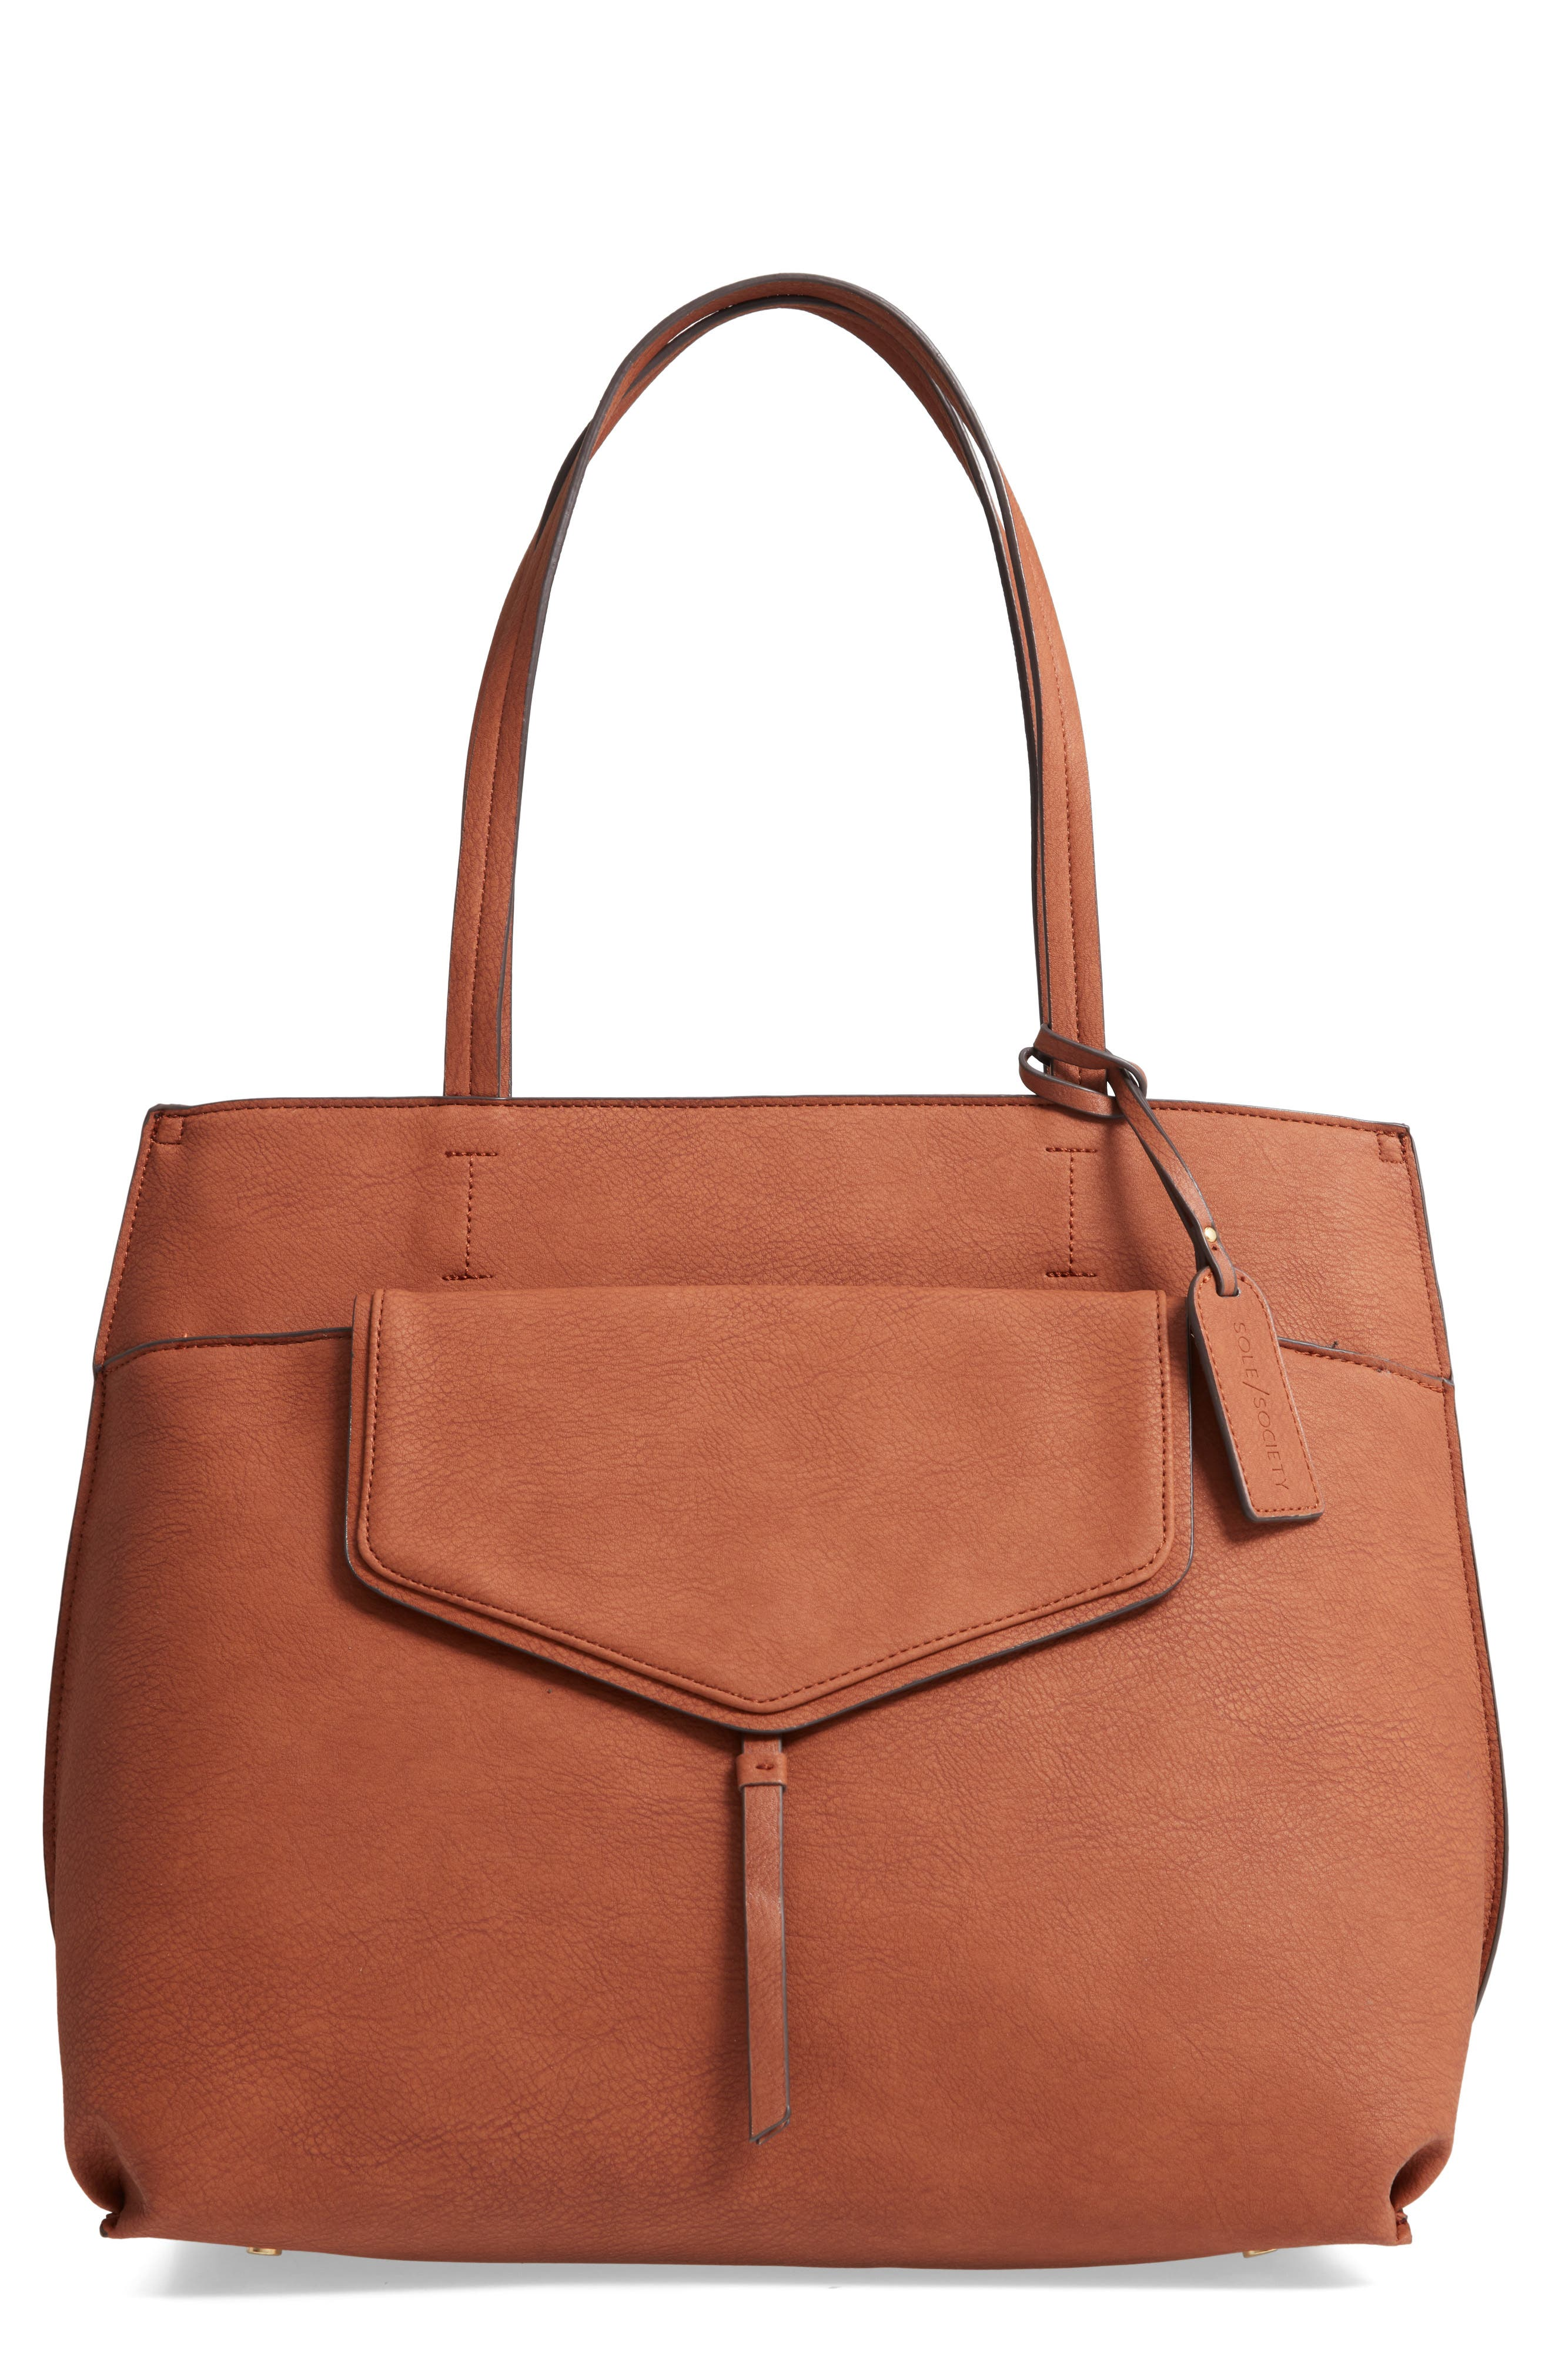 SOLE SOCIETY Lyndi Faux Leather Tote, Main, color, COGNAC